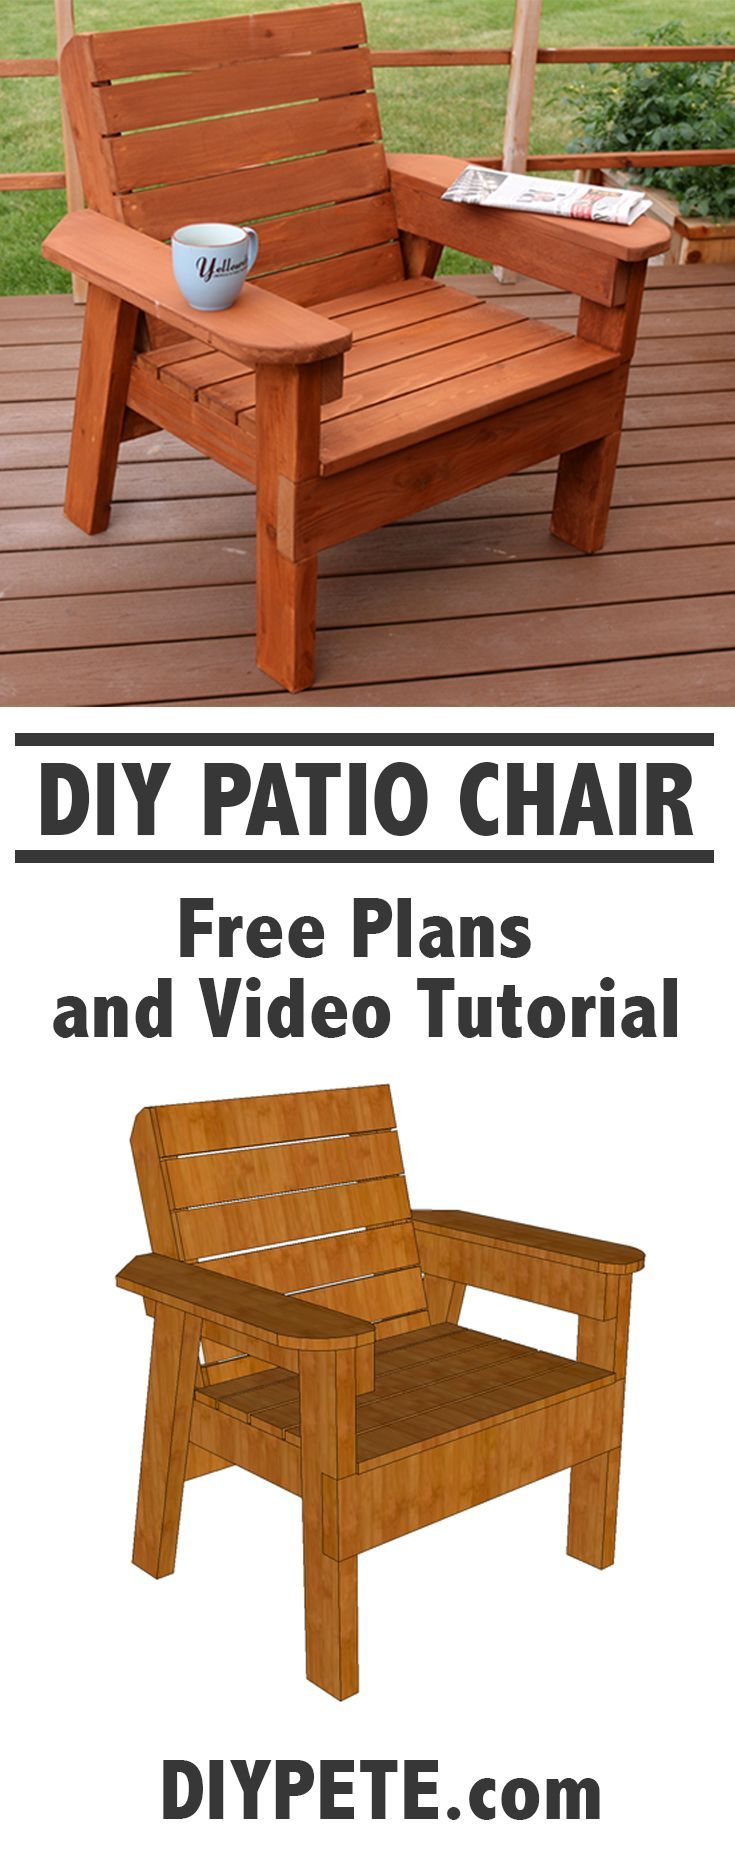 DIY Woodworking Ideas Learn how to build a patio chair! This is a fun and simple project you can tackl...